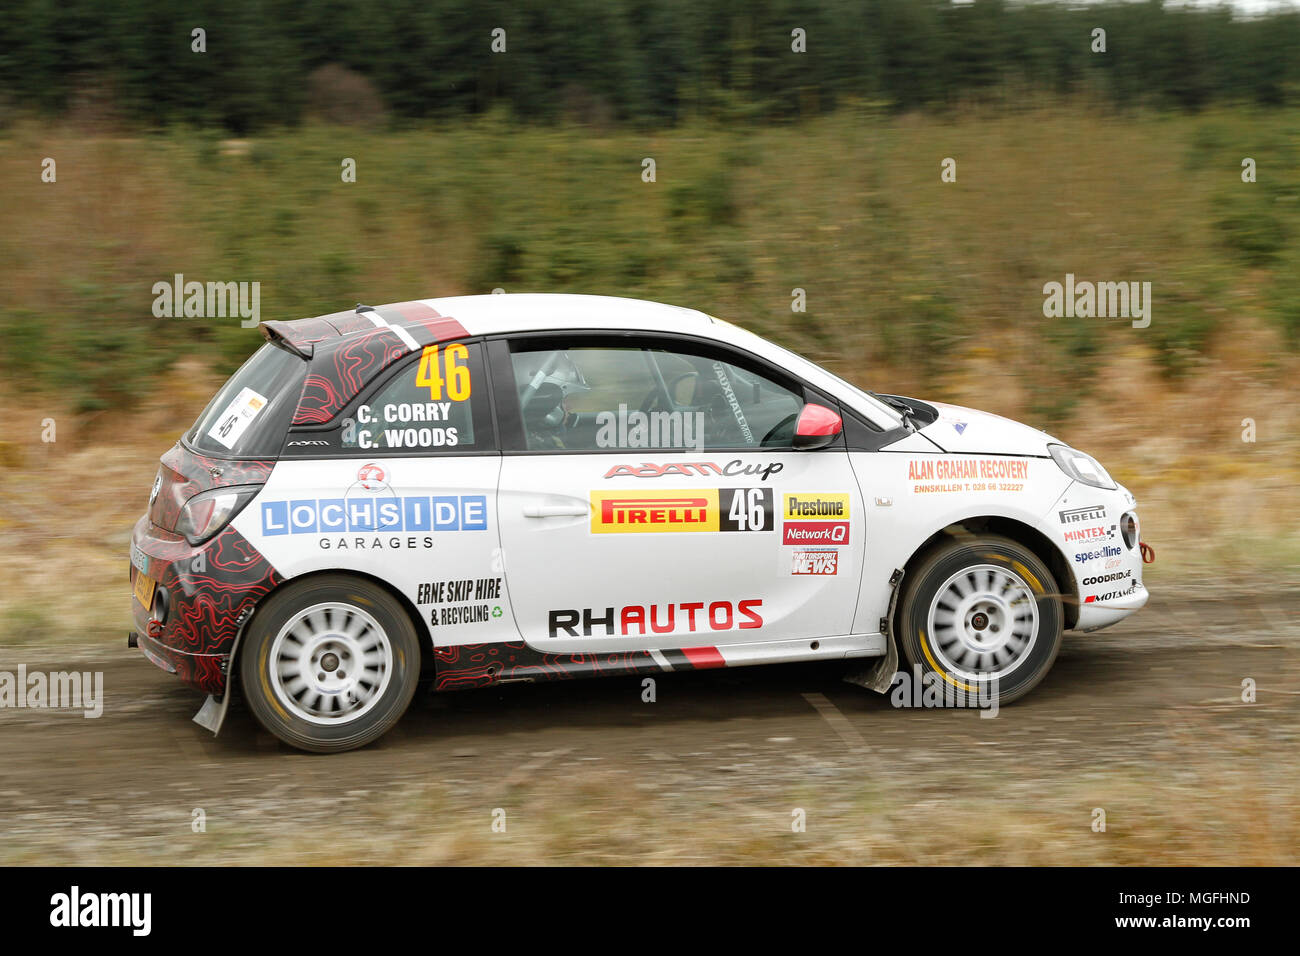 Kielder Forest, Northumberland, UK, 28 April 2018. Rally drivers compete in the Pirelli International Rally and second round of the Prestone British Rally Championship. (Special Stage 1 - Pundershaw 1). Andrew Cheal/Alamy Live News Stock Photo